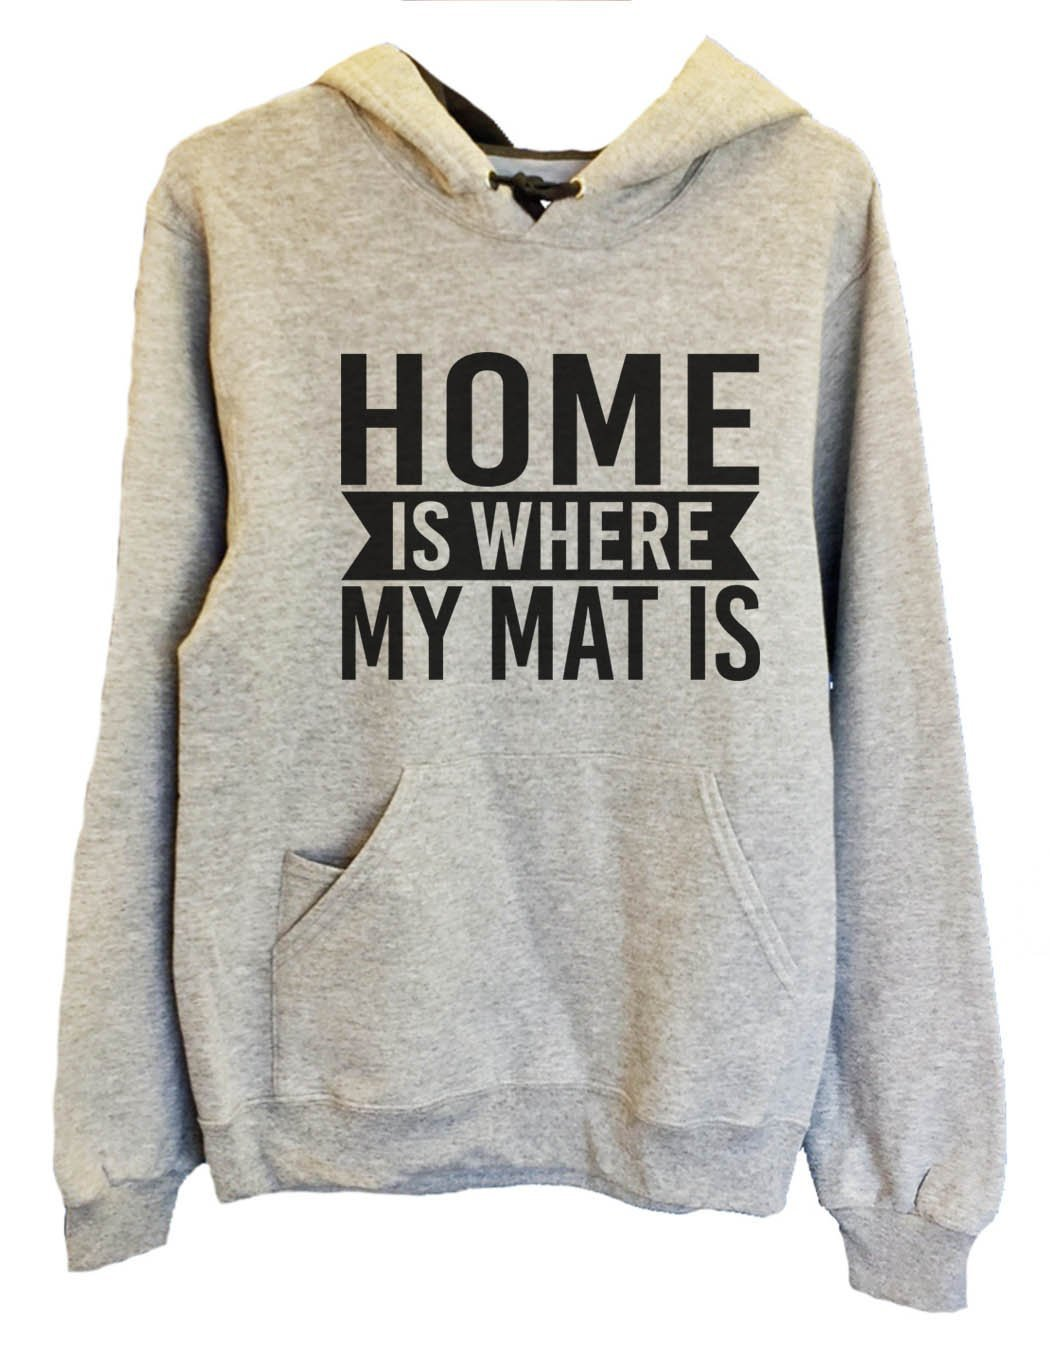 UNISEX HOODIE - Home Is Where My Mat Is - FUNNY MENS AND WOMENS HOODED SWEATSHIRTS - 2132 Funny Shirt Small / Heather Grey